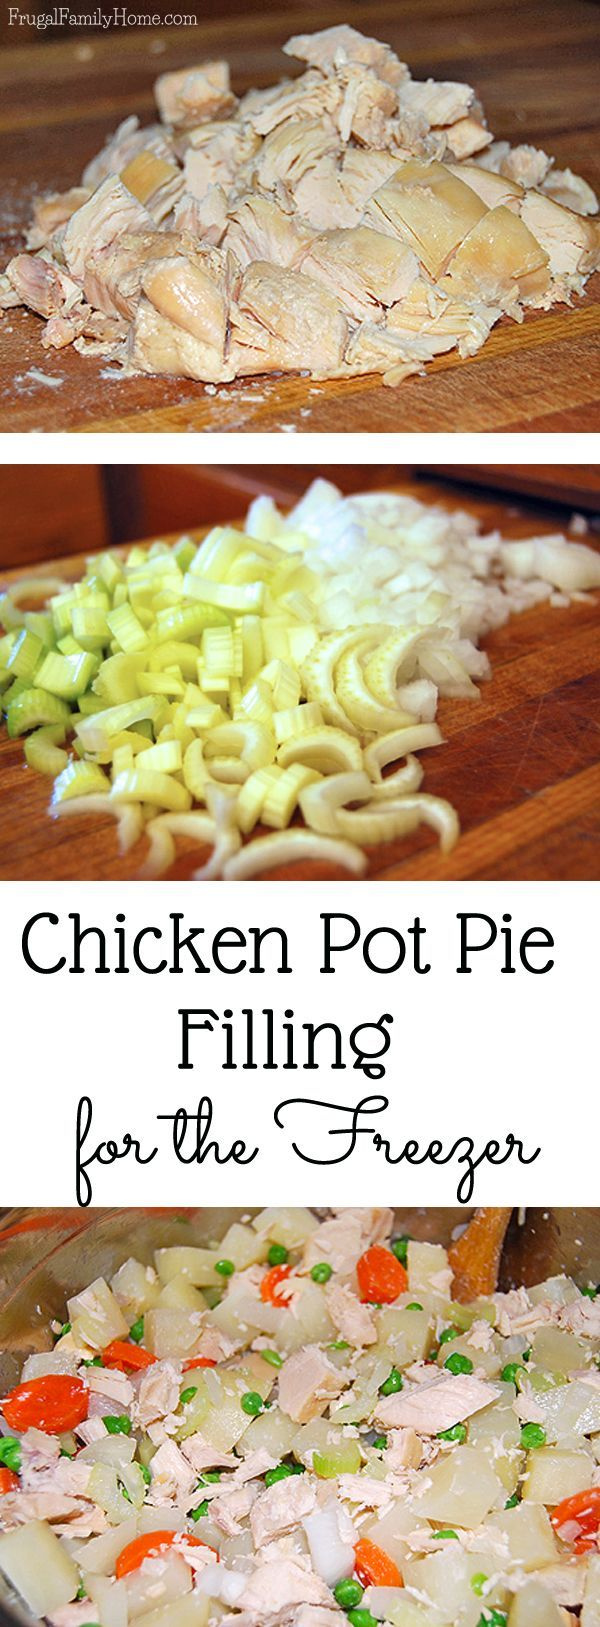 Chicken Pot Pie Filling for the Freezer ~ Prepare the filling for the freezer and have half the job of making chicken pot pie done. So simple and easy to make. Great freezer recipe.